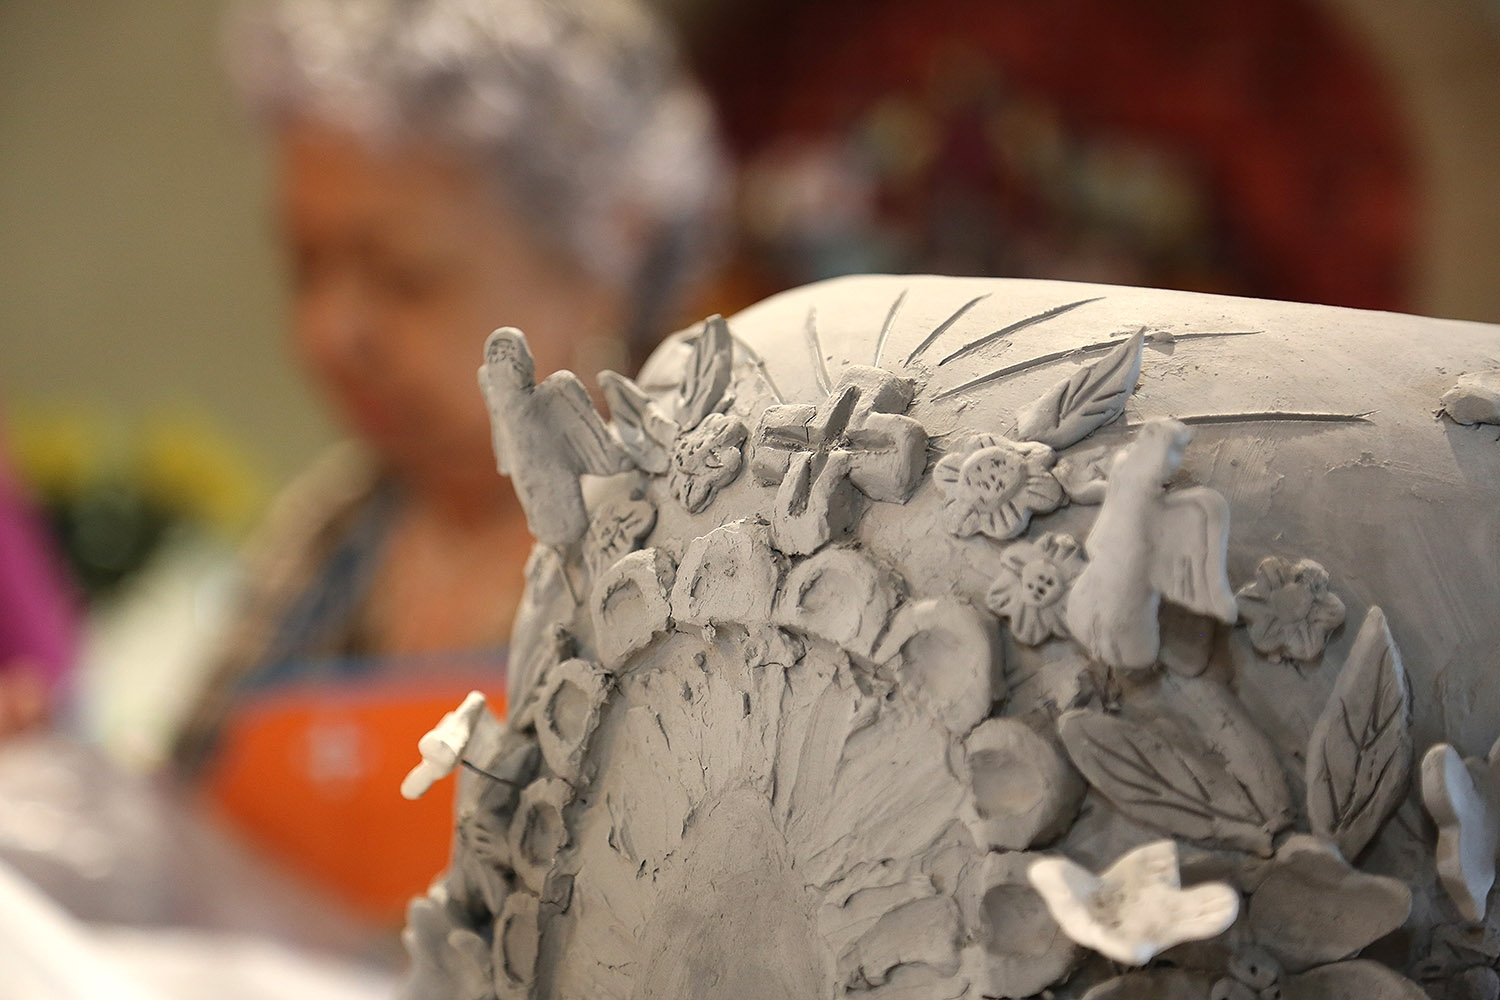 A work-in-progress by members of the MujerArtes women's clay cooperative.